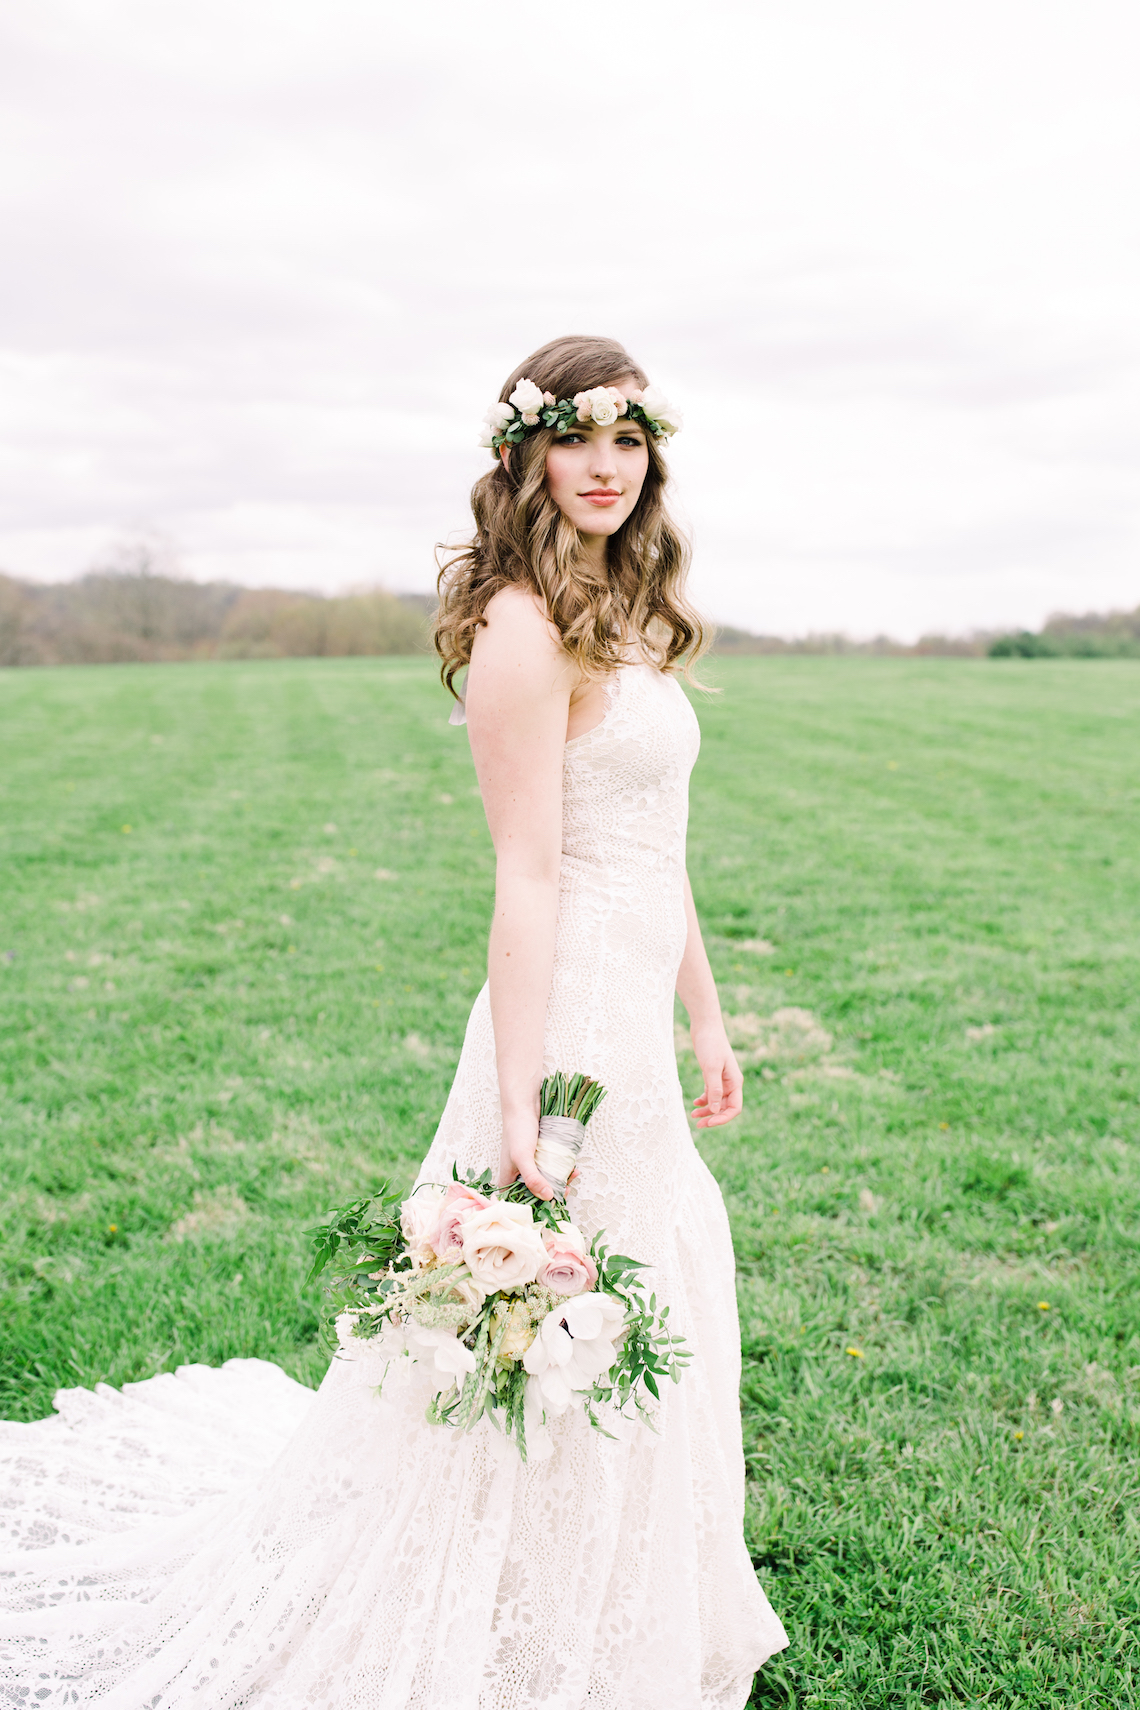 Quaint Country Chic Boho Wedding Inspiration – Sons and Daughters Photography 10